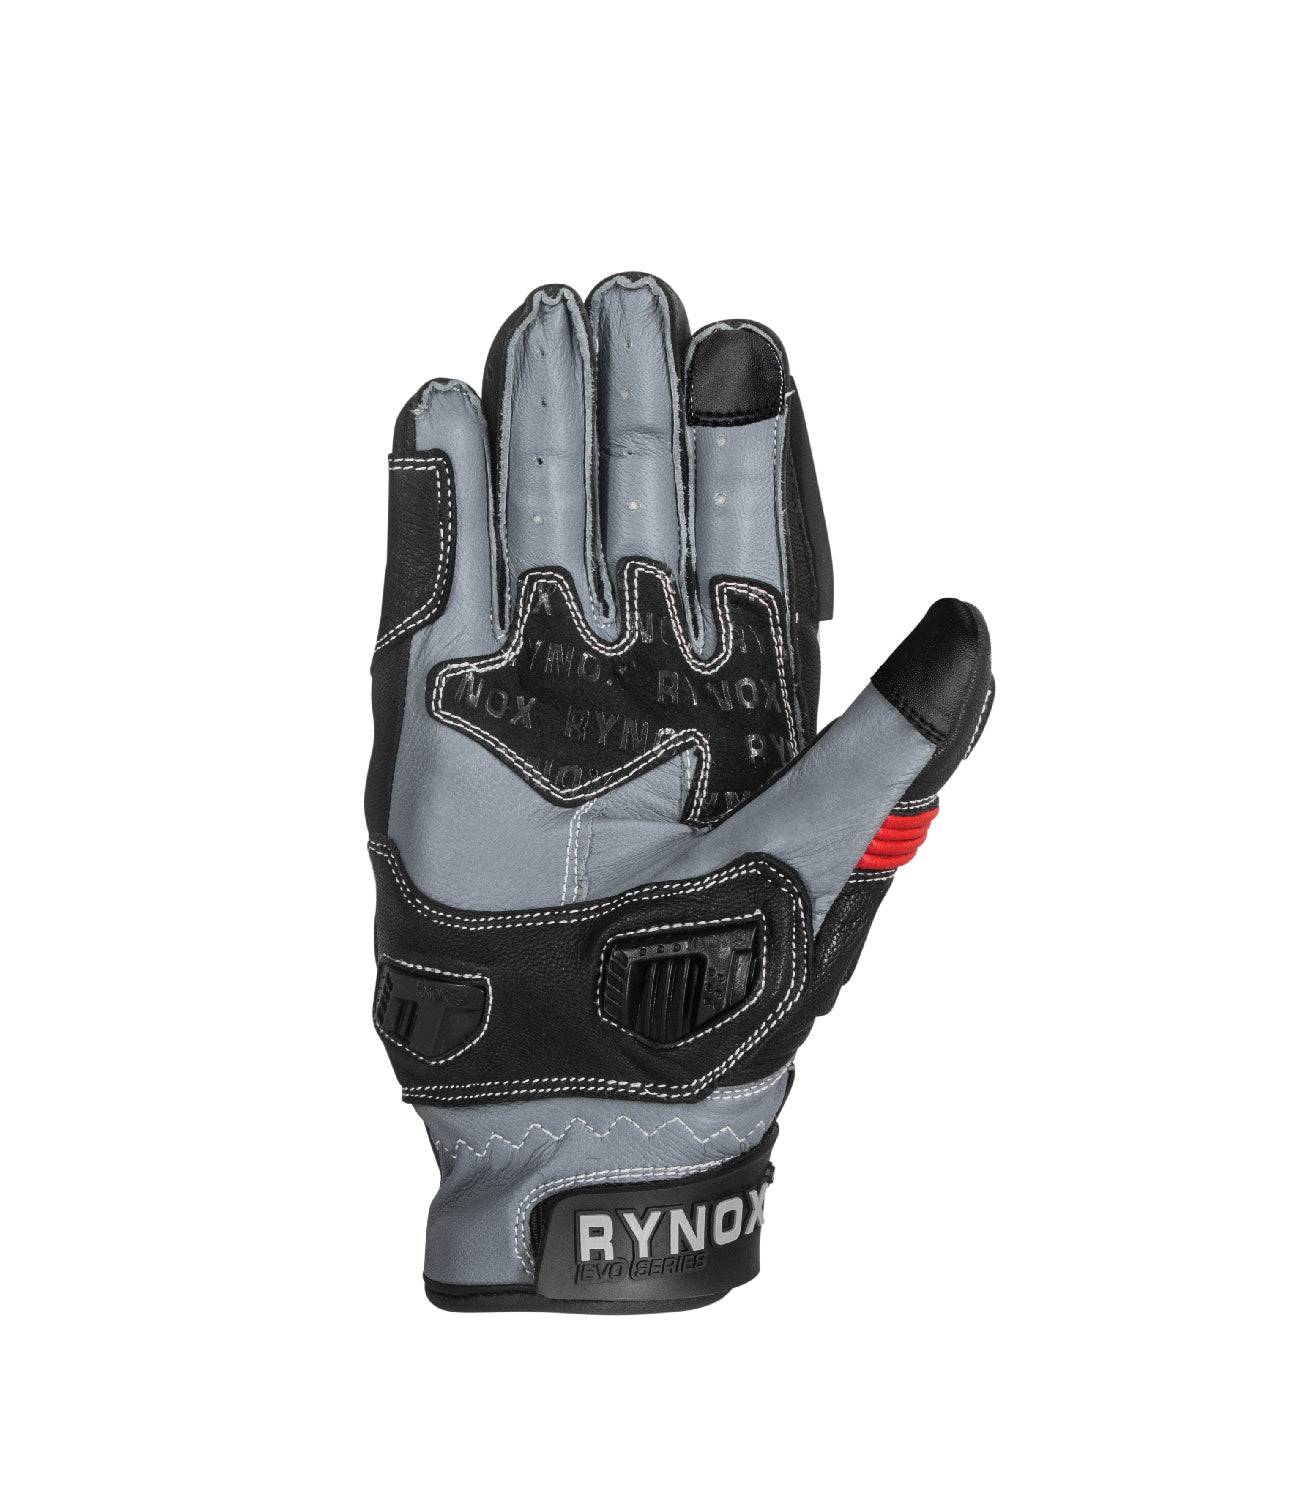 DELTA EVO GLOVES (Black) - Rynox Gears -